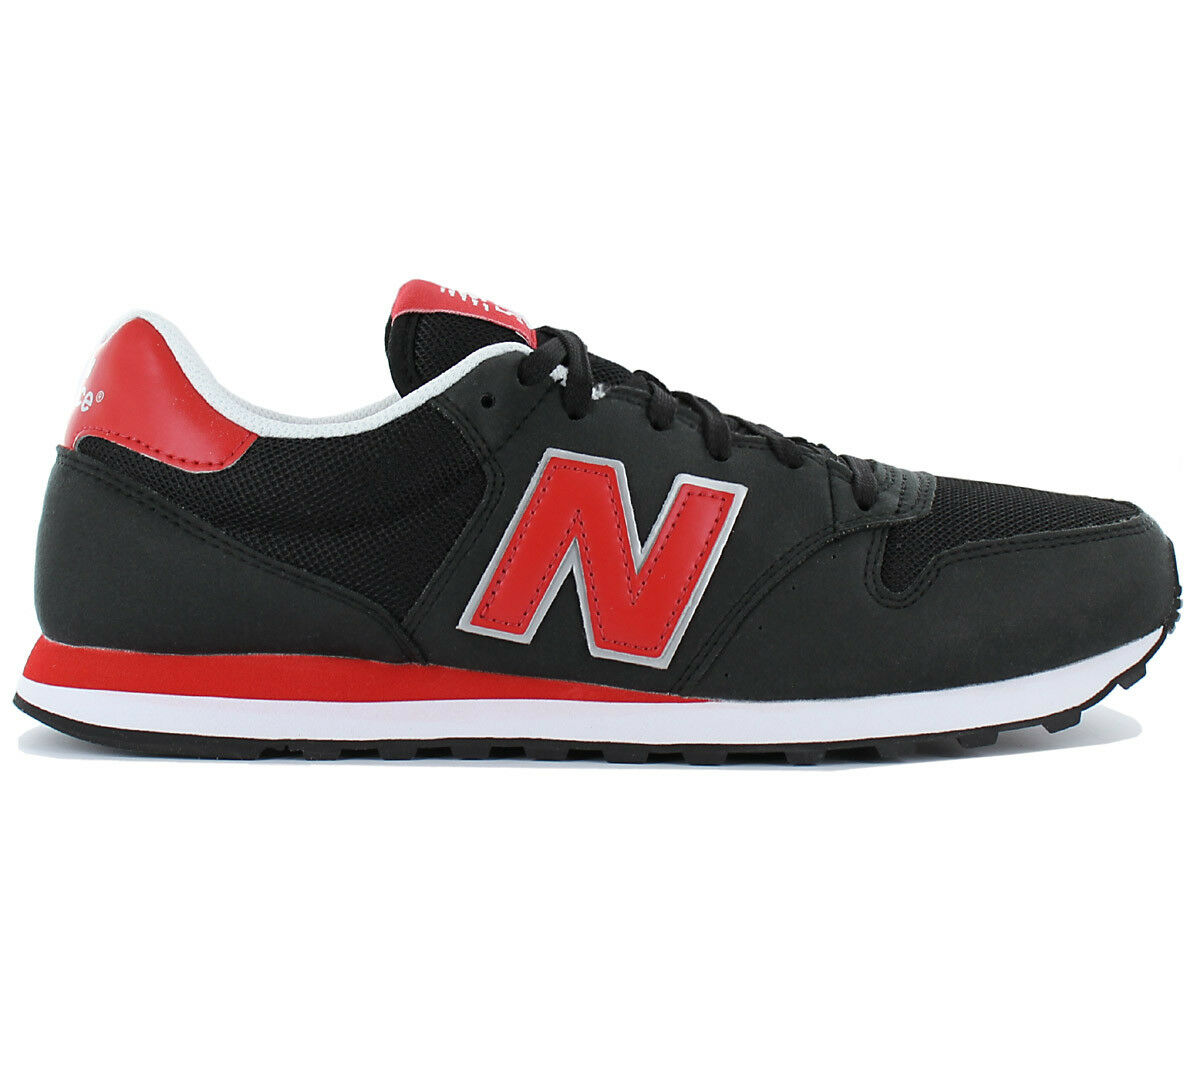 New Balance Classic 500 Trainers Men's Sneakers Shoes Black Trainers 500 Nb GM500GSB New c2b28f